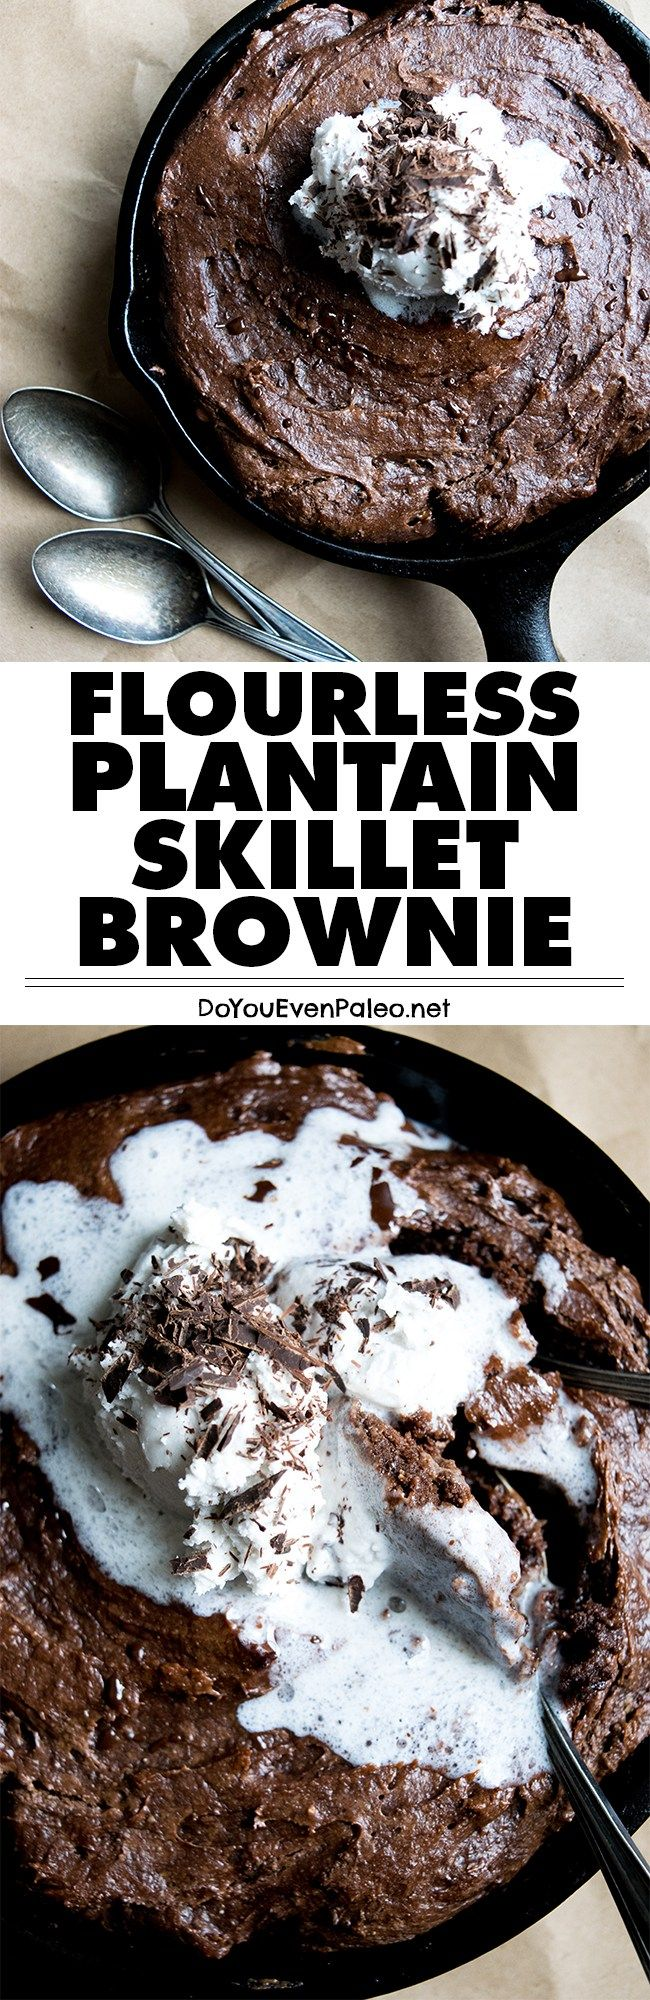 A decadent treat with just a handful of ingredients! This flourless plantain skillet brownie is paleo, vegan, gluten free and nut free.   DoYouEvenPaleo.net